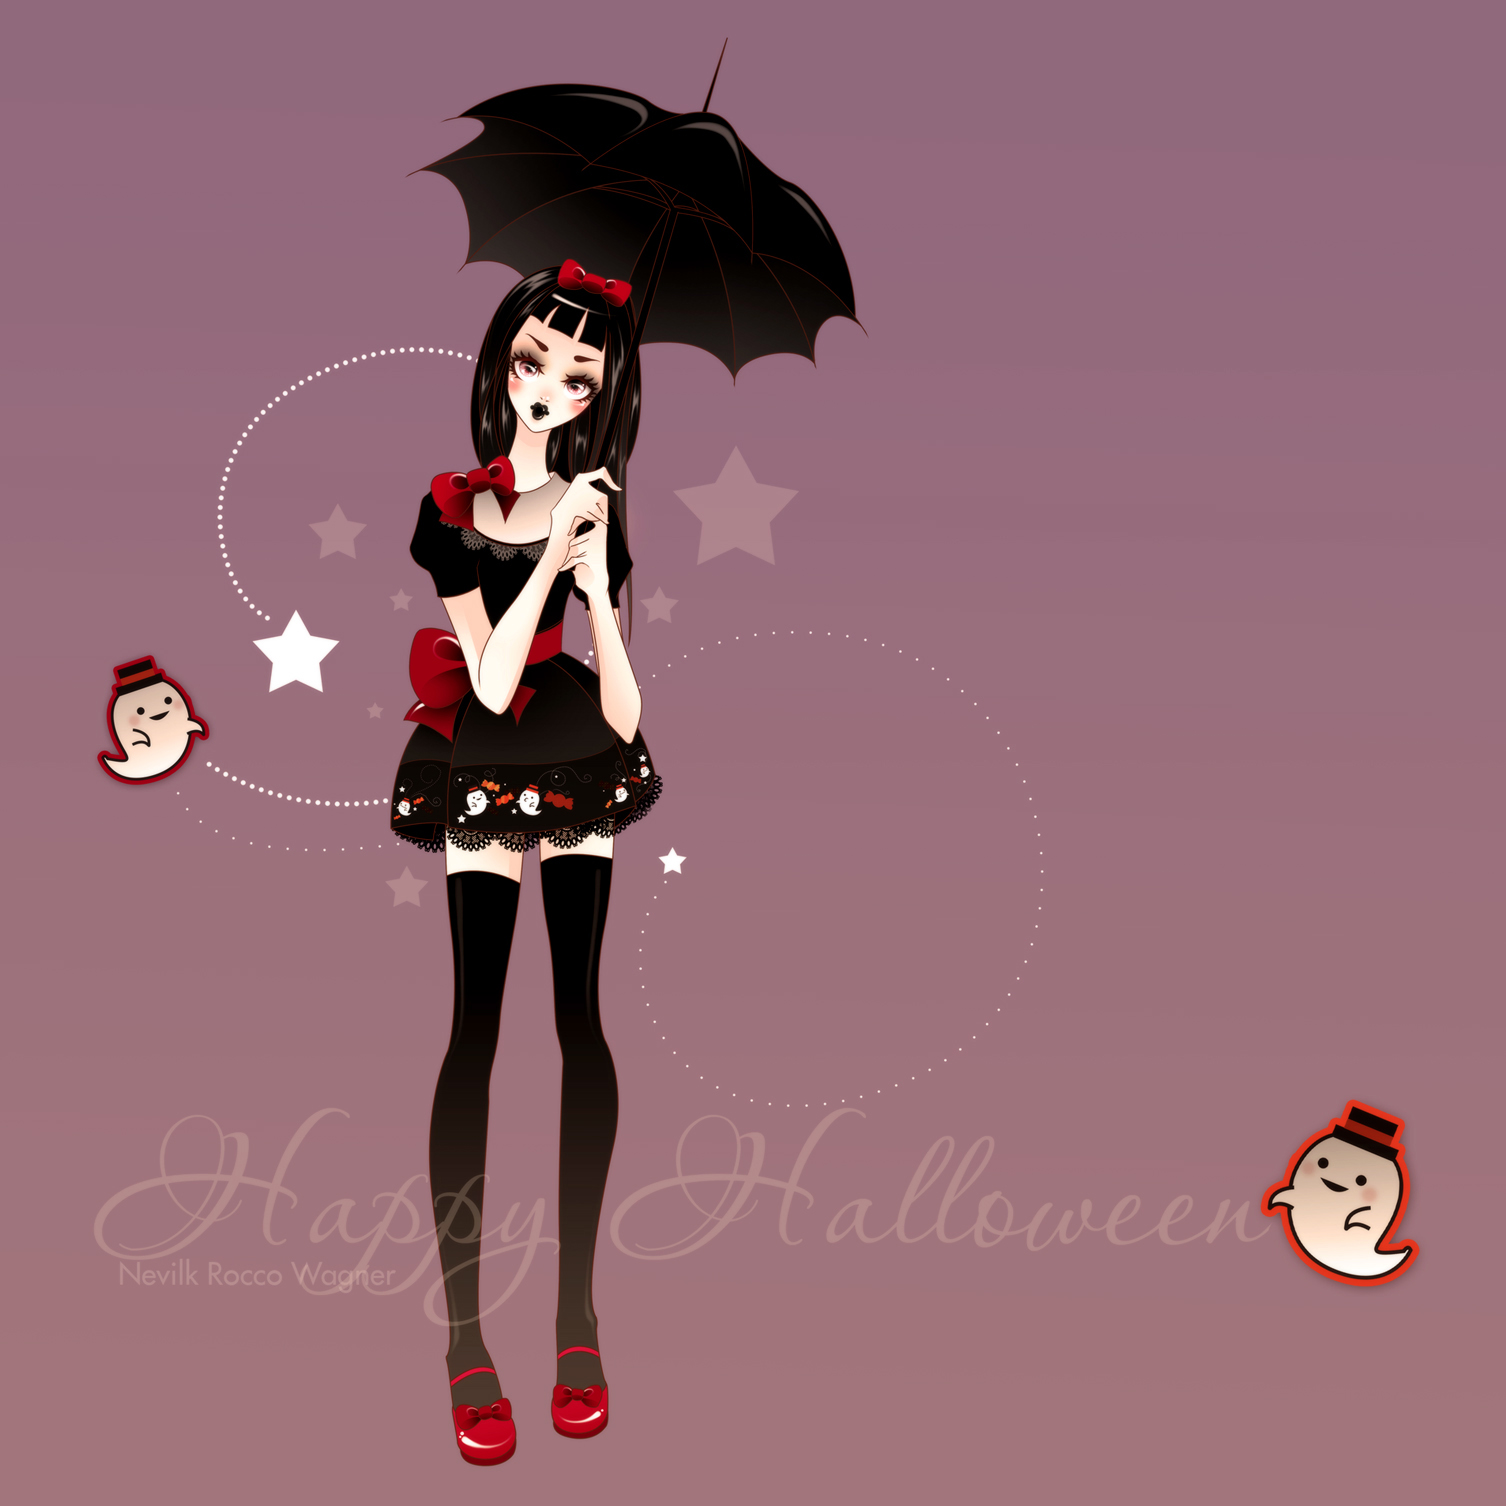 Happy Halloween GothicLolita by Nevilk